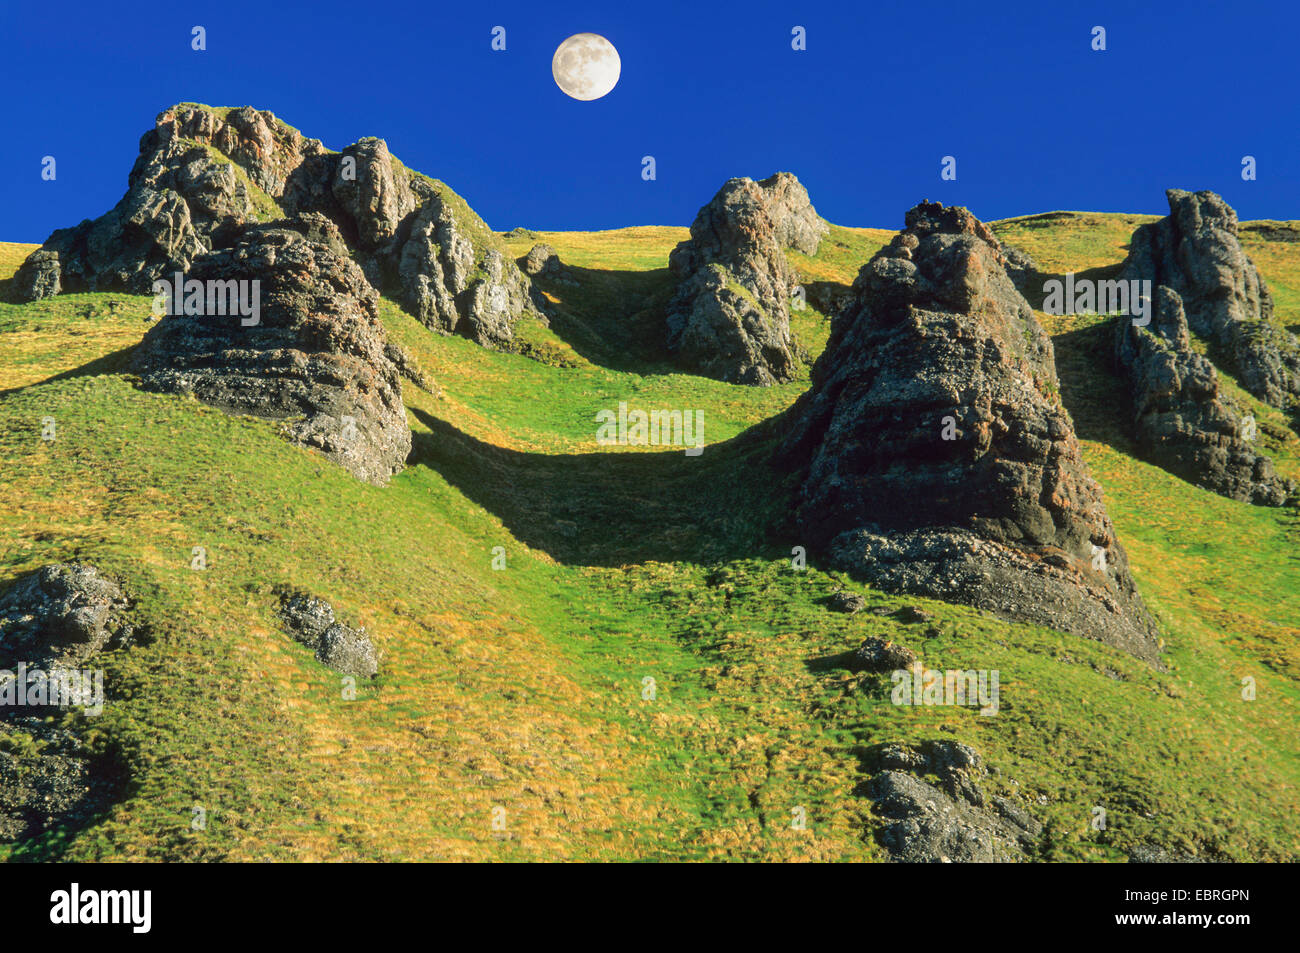 rock formation at Pordoi Pass with full moon, Italy, South Tyrol, Dolomites - Stock Image